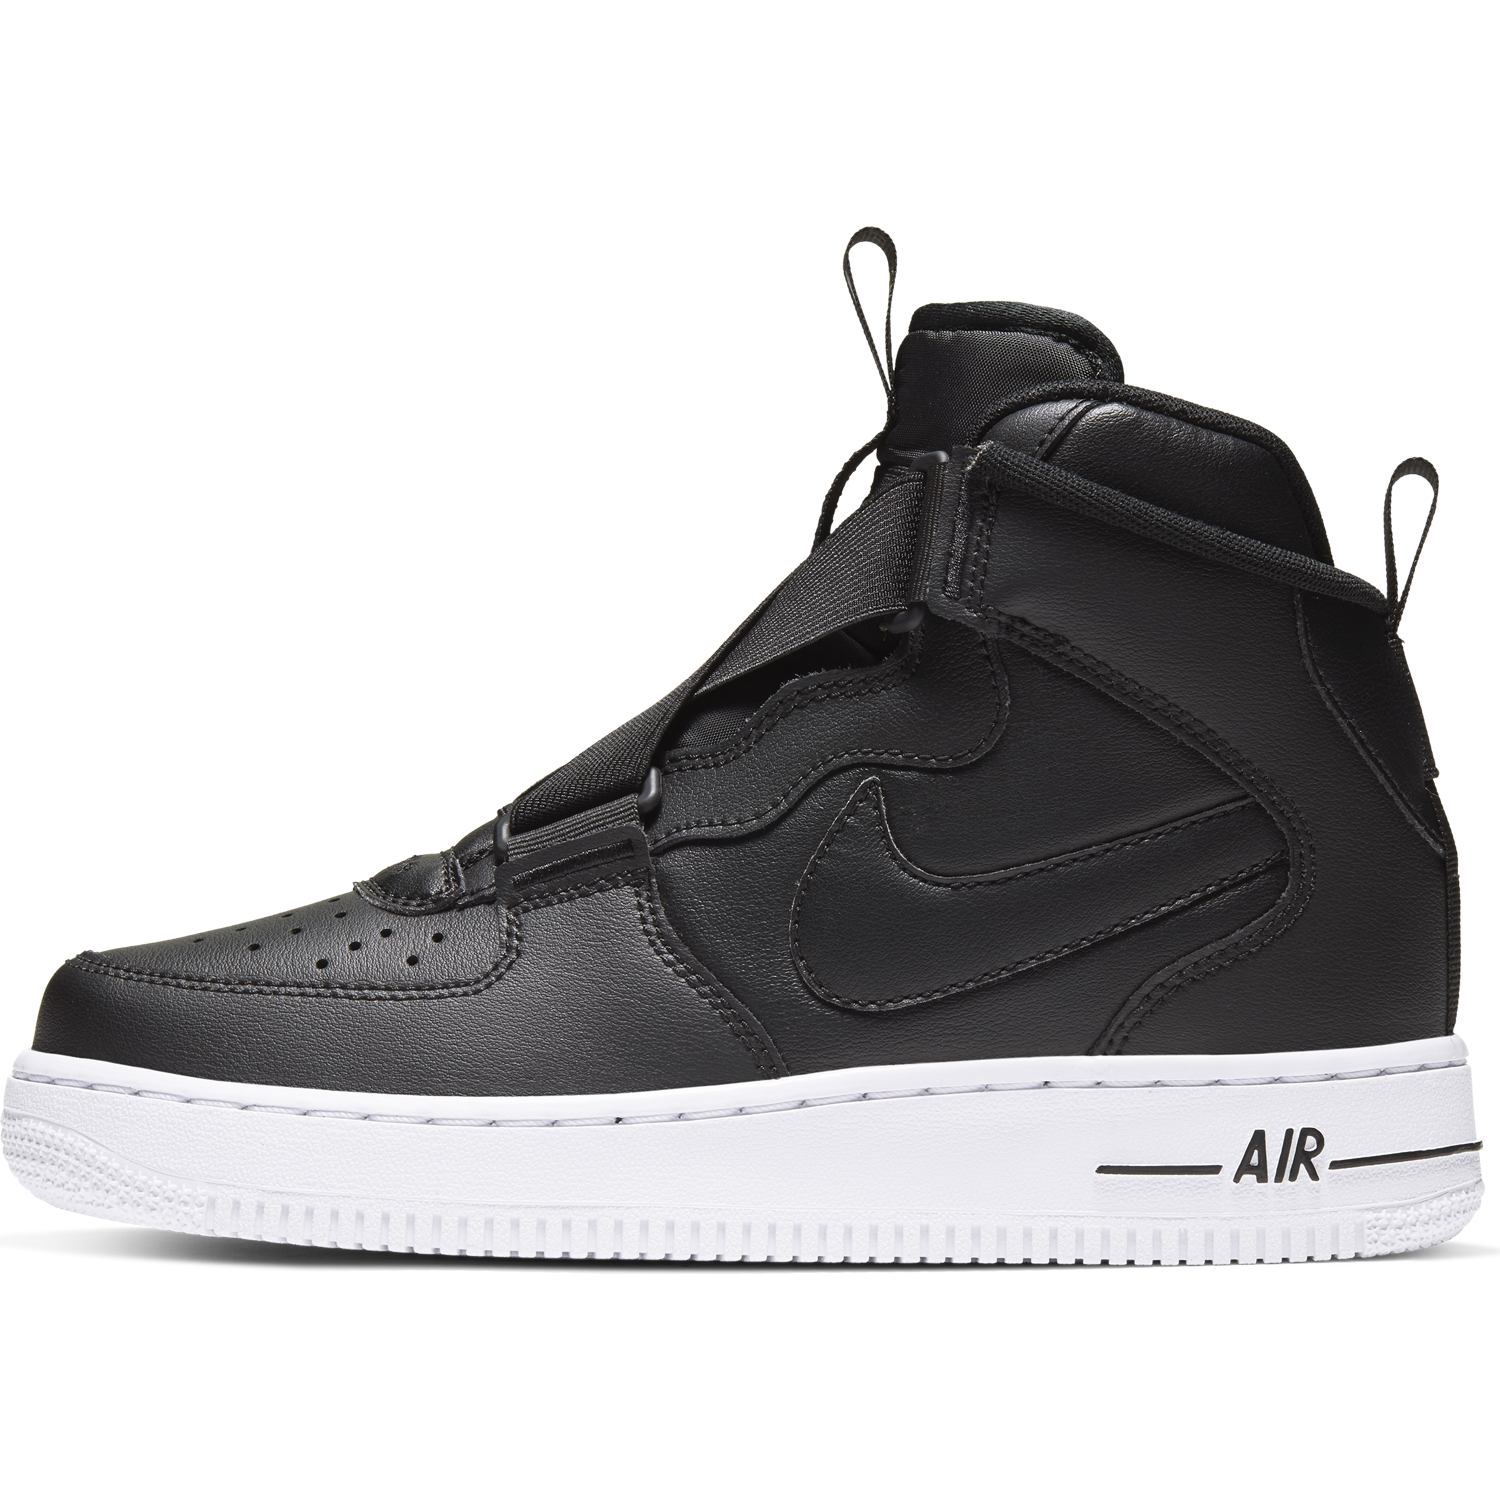 BUTY JUNIOR NIKE AIR FORCE 1 HIGHNESS CZARNE BQ3598 001